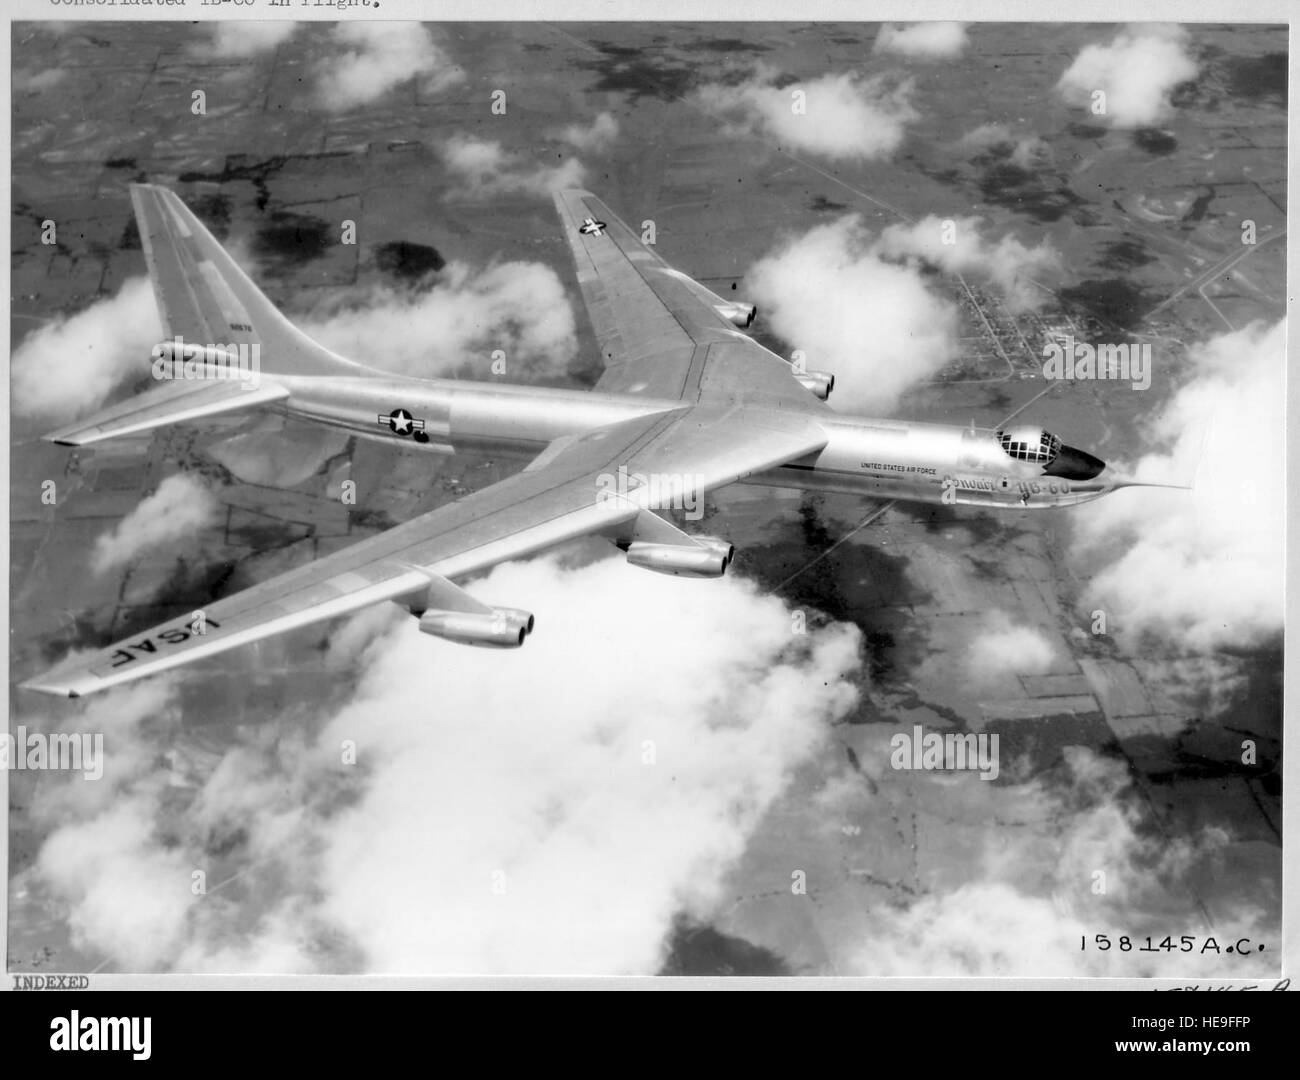 Consolidated YB-60 in flight,1952. Convair YB-60 sweptwing, eight-jet bomber is shown here in the first flight view - Stock Image